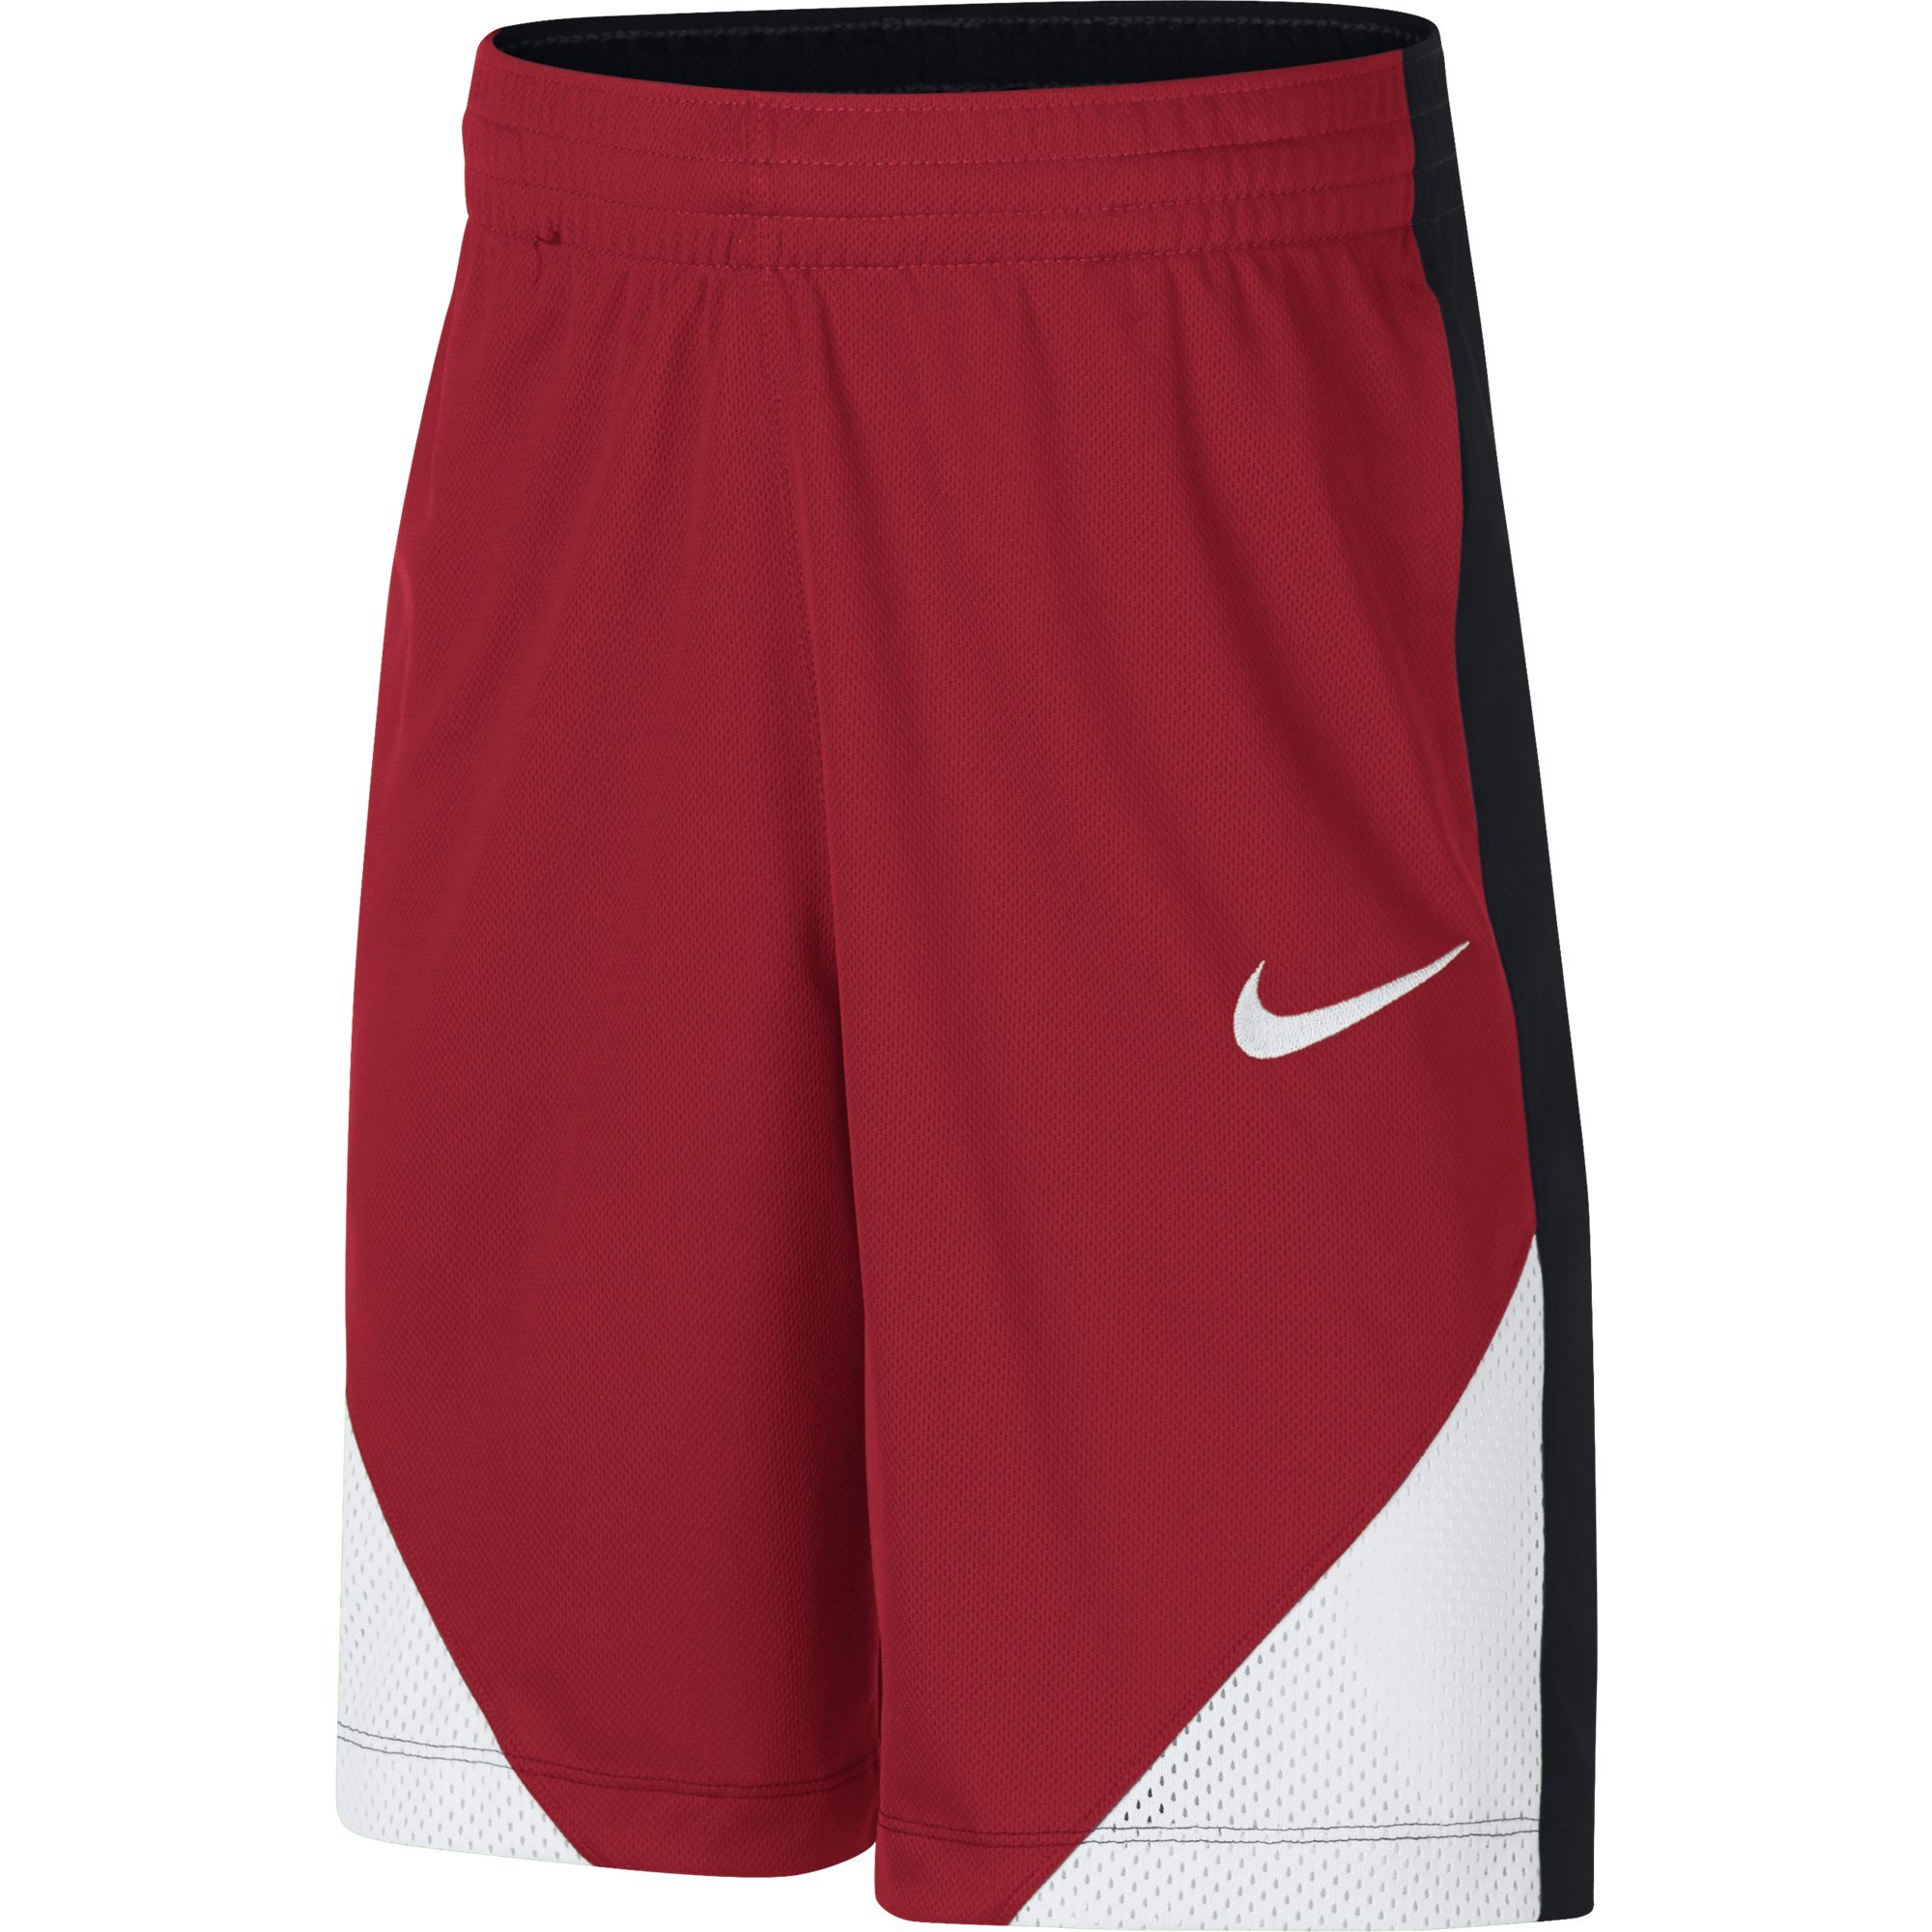 NIKE Boys' Assist Basketball Shorts, University Red/Black/White/White, X-Large